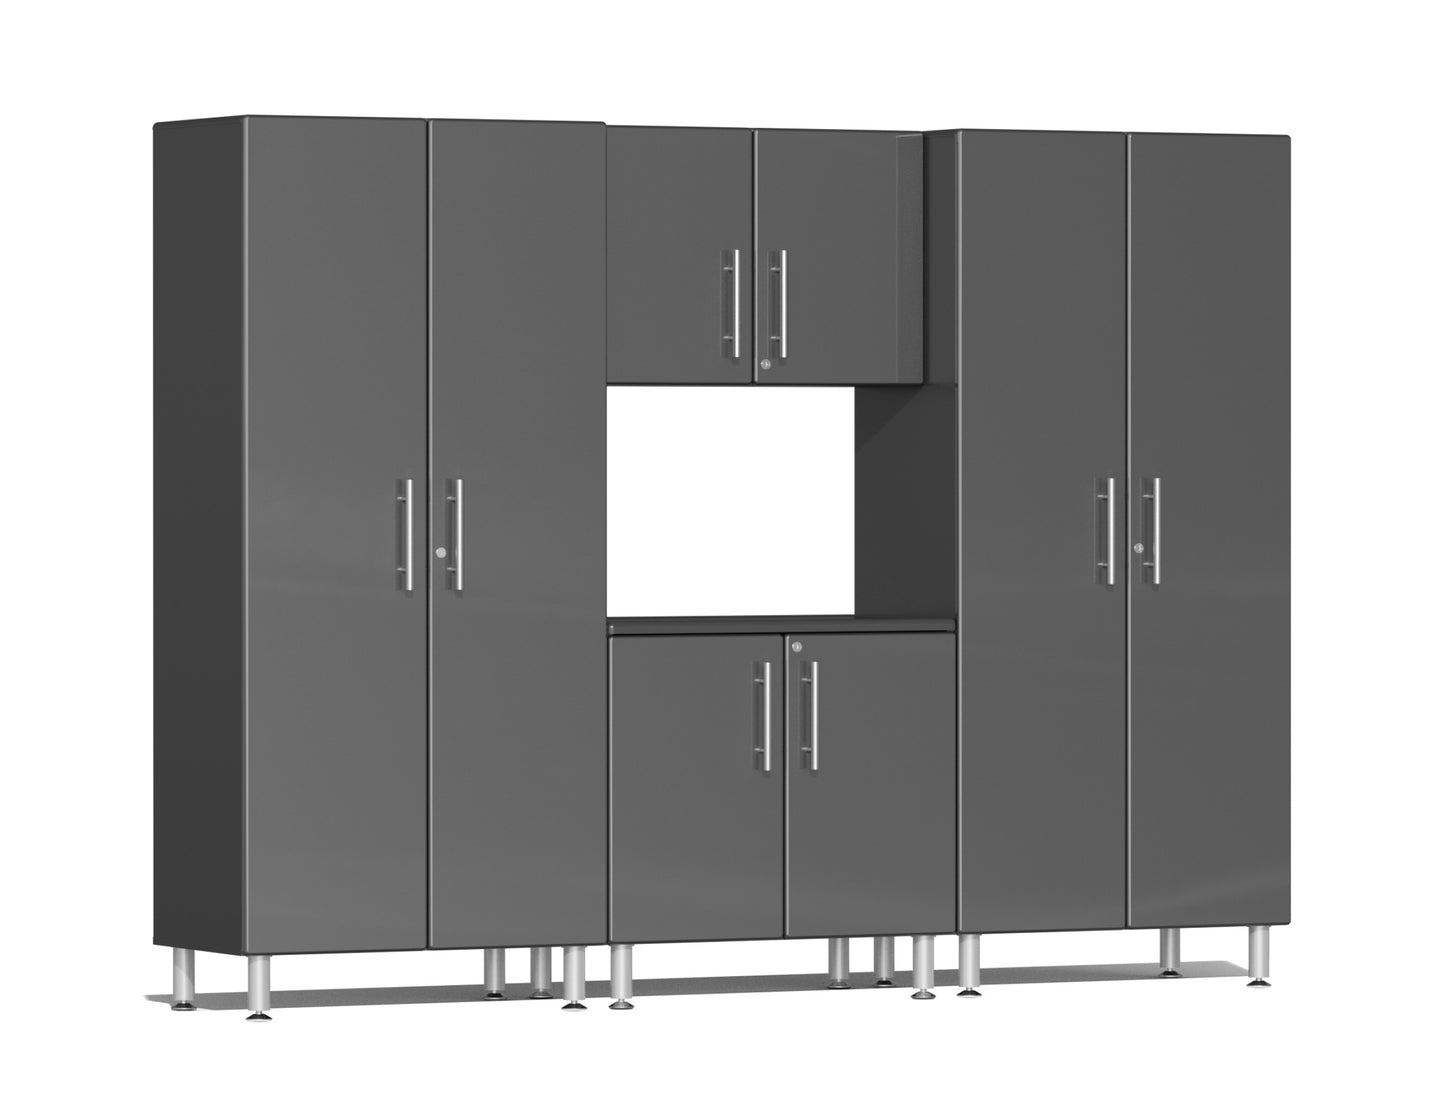 Ulti-MATE Garage Cabinet 2.0 Series 4-Piece Kit Gray